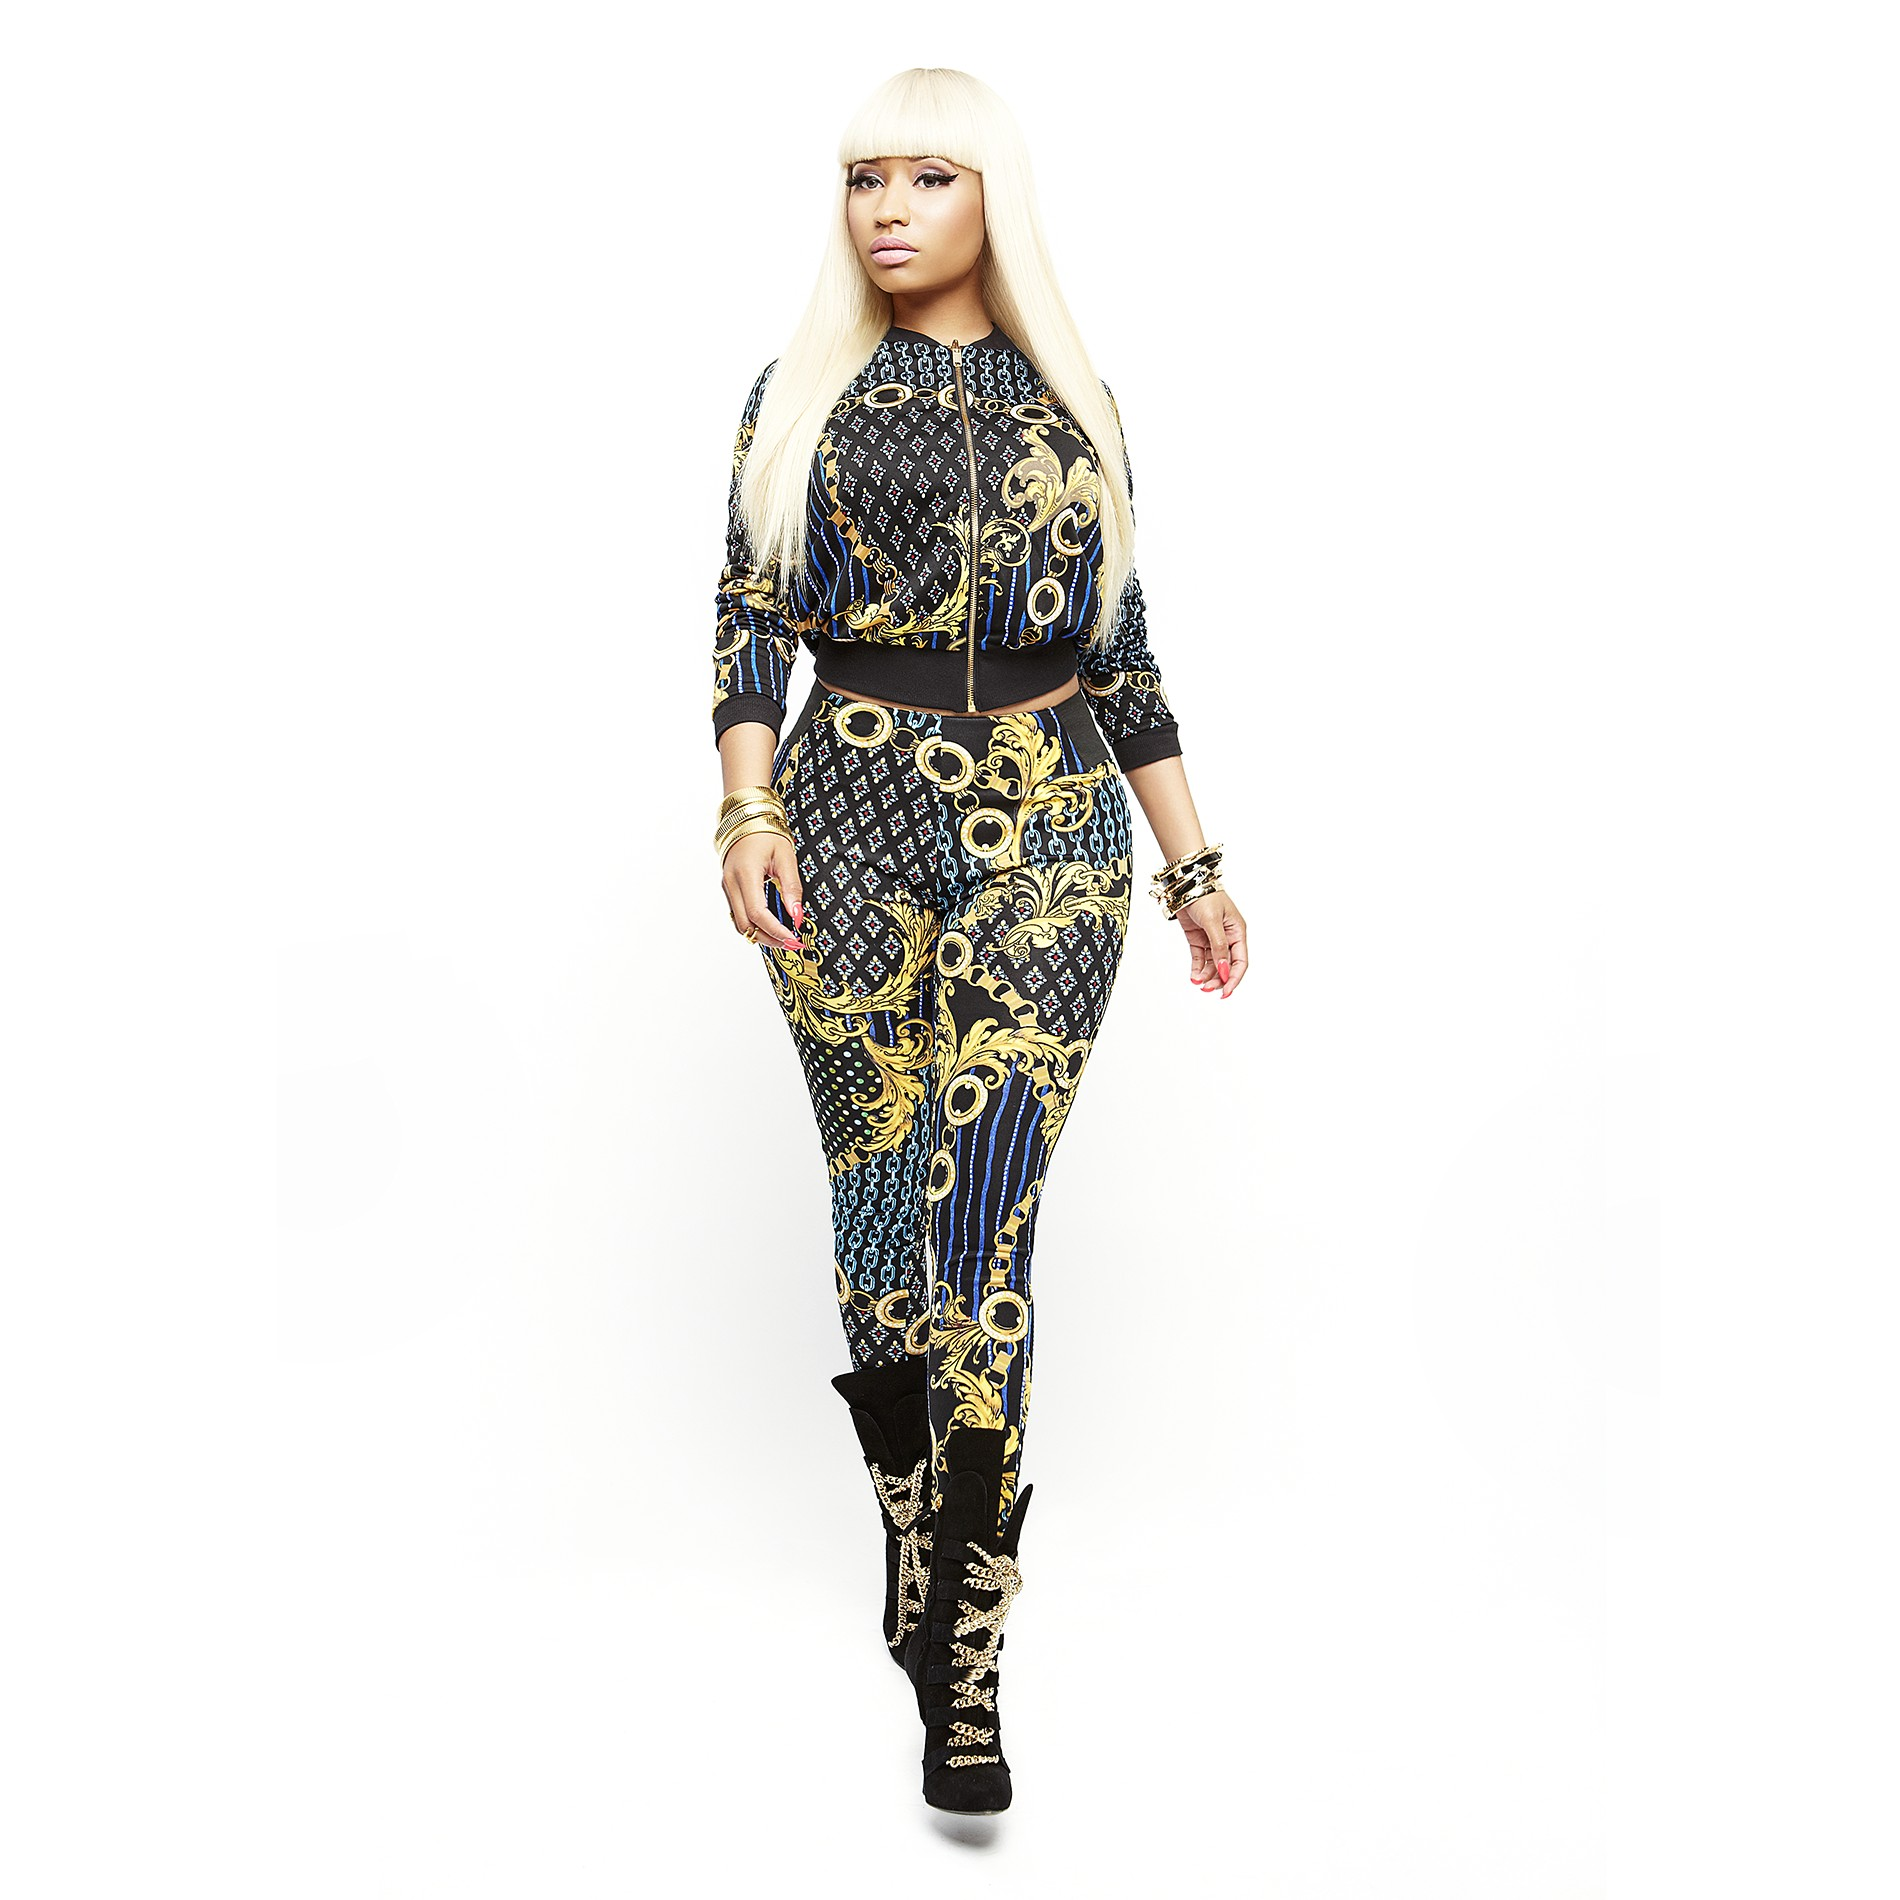 Nicki Minaj Women's Bomber Jacket - Chain Print - Clothing - Women's - Jackets & Blazers